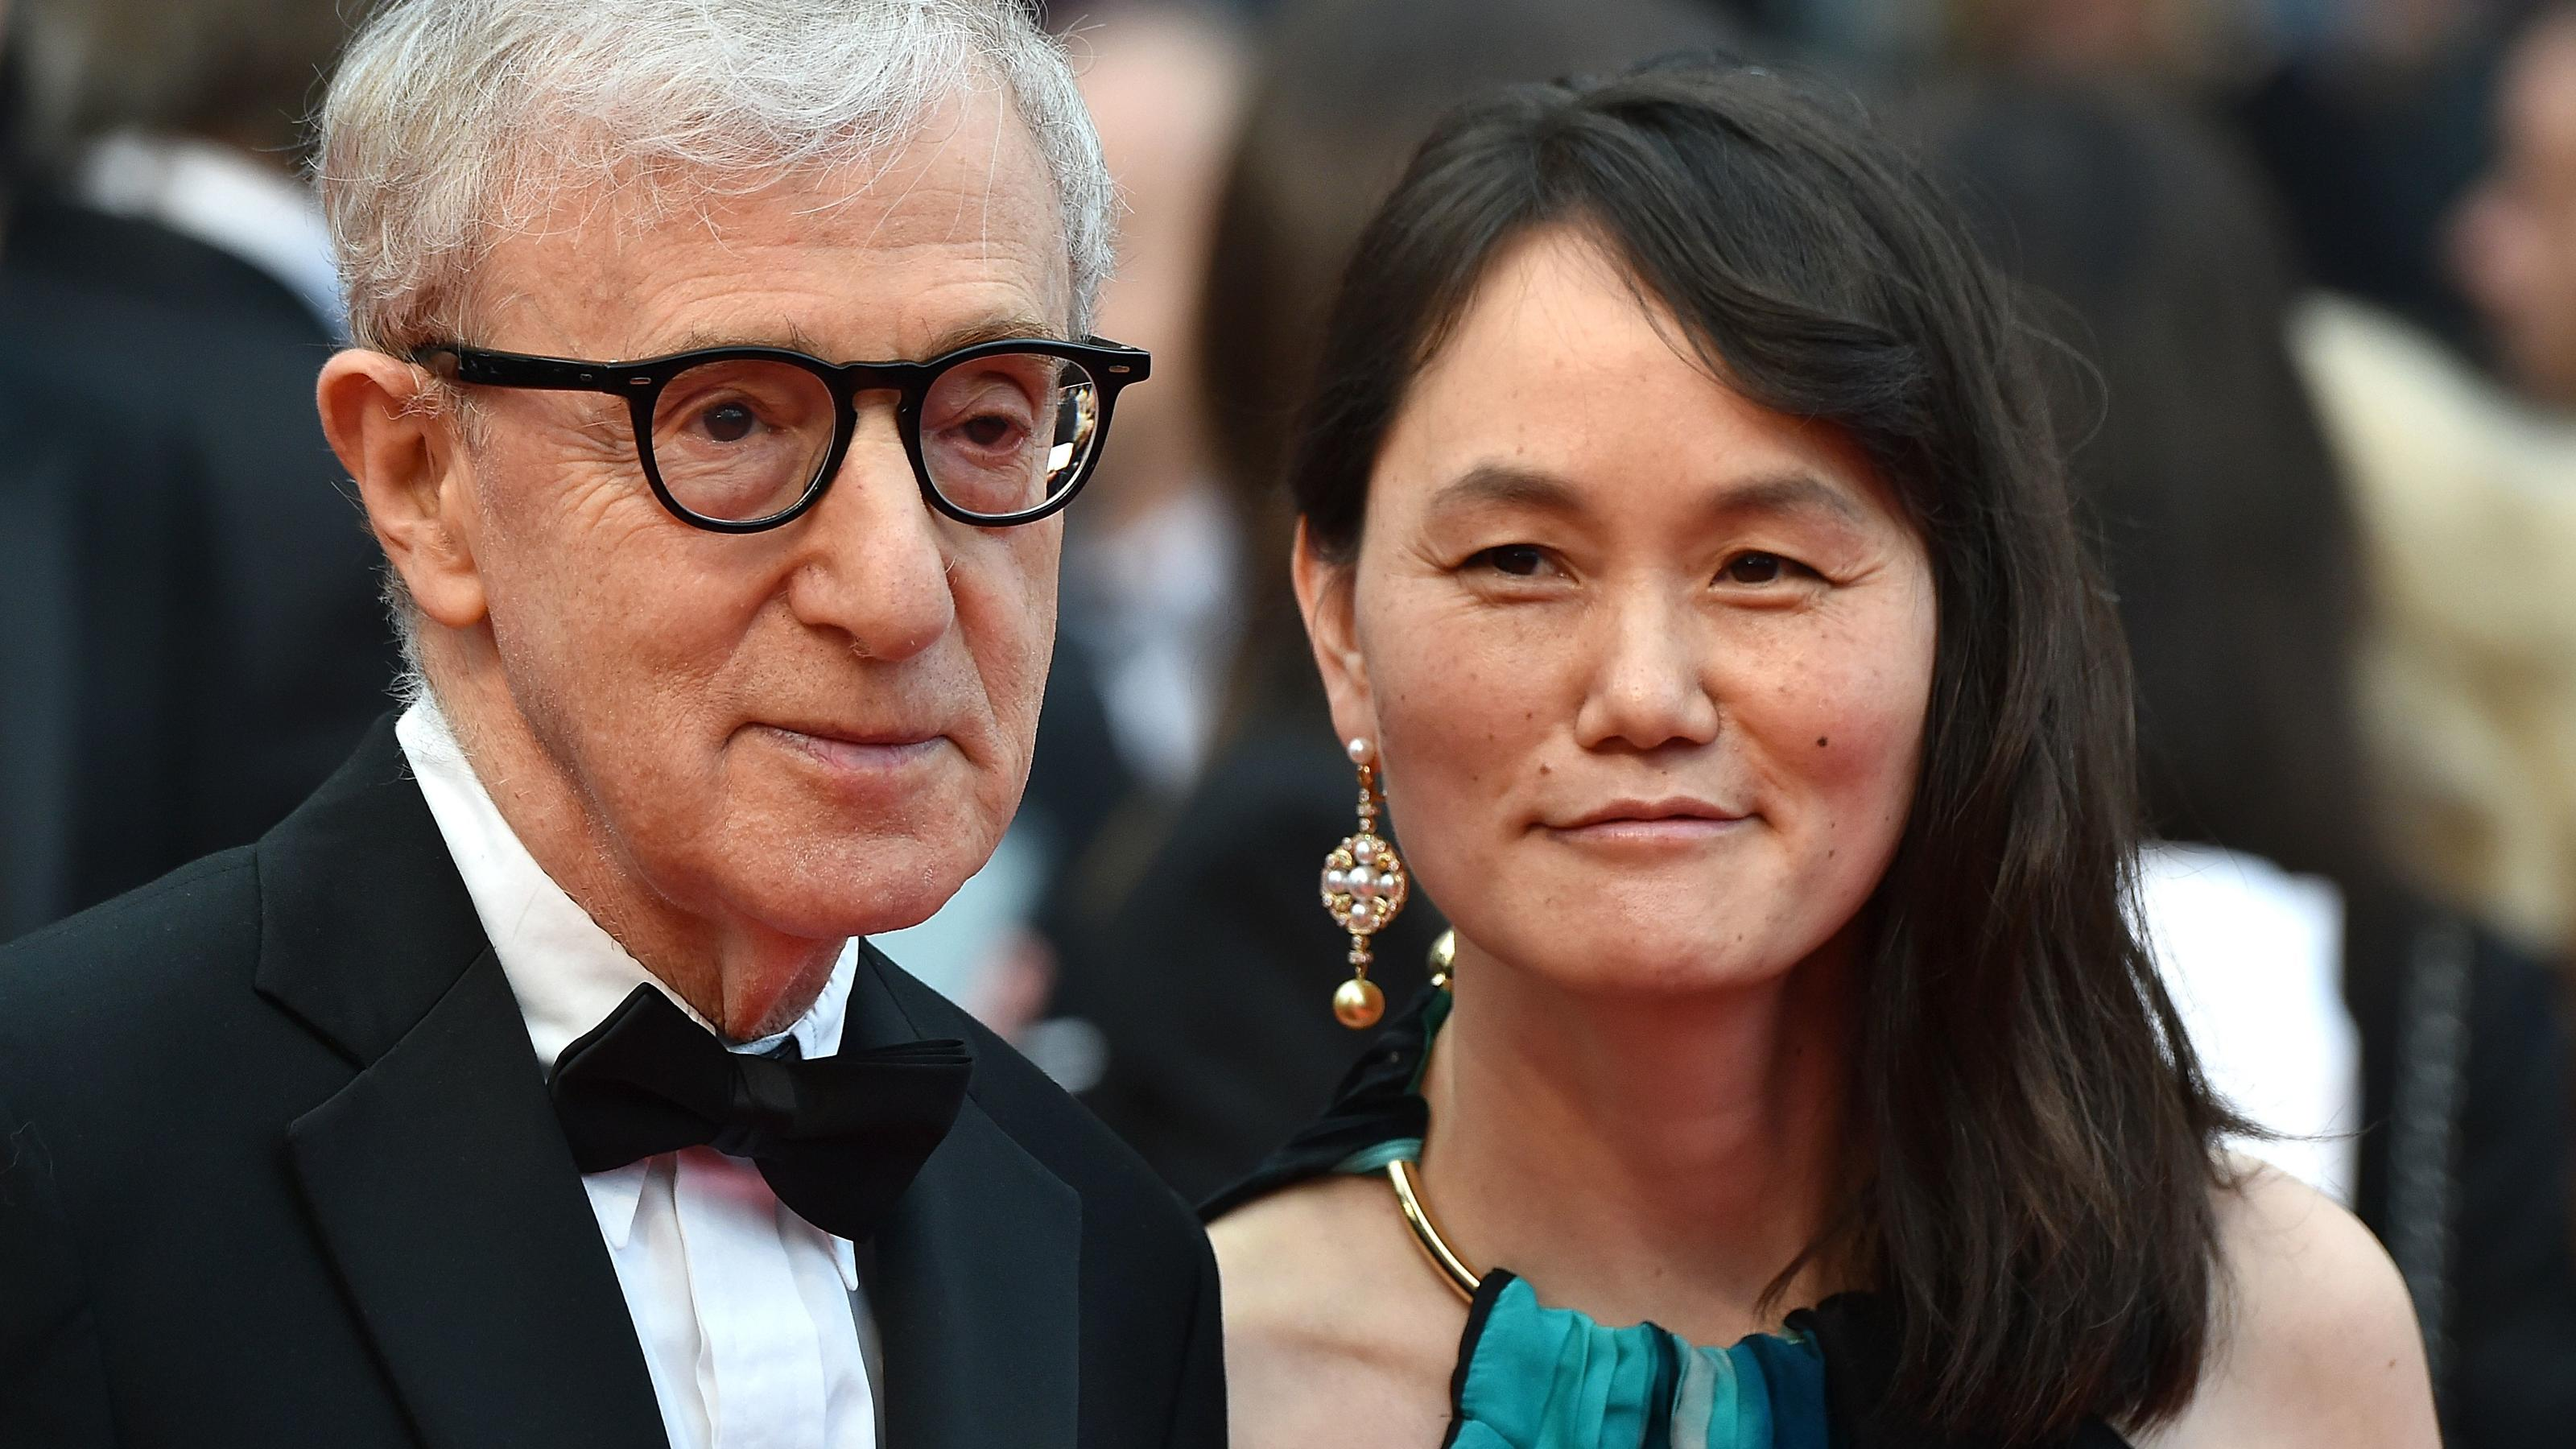 Woody Allen opens up about his marriage to Soon-Yi Previn | Daily Mail Online